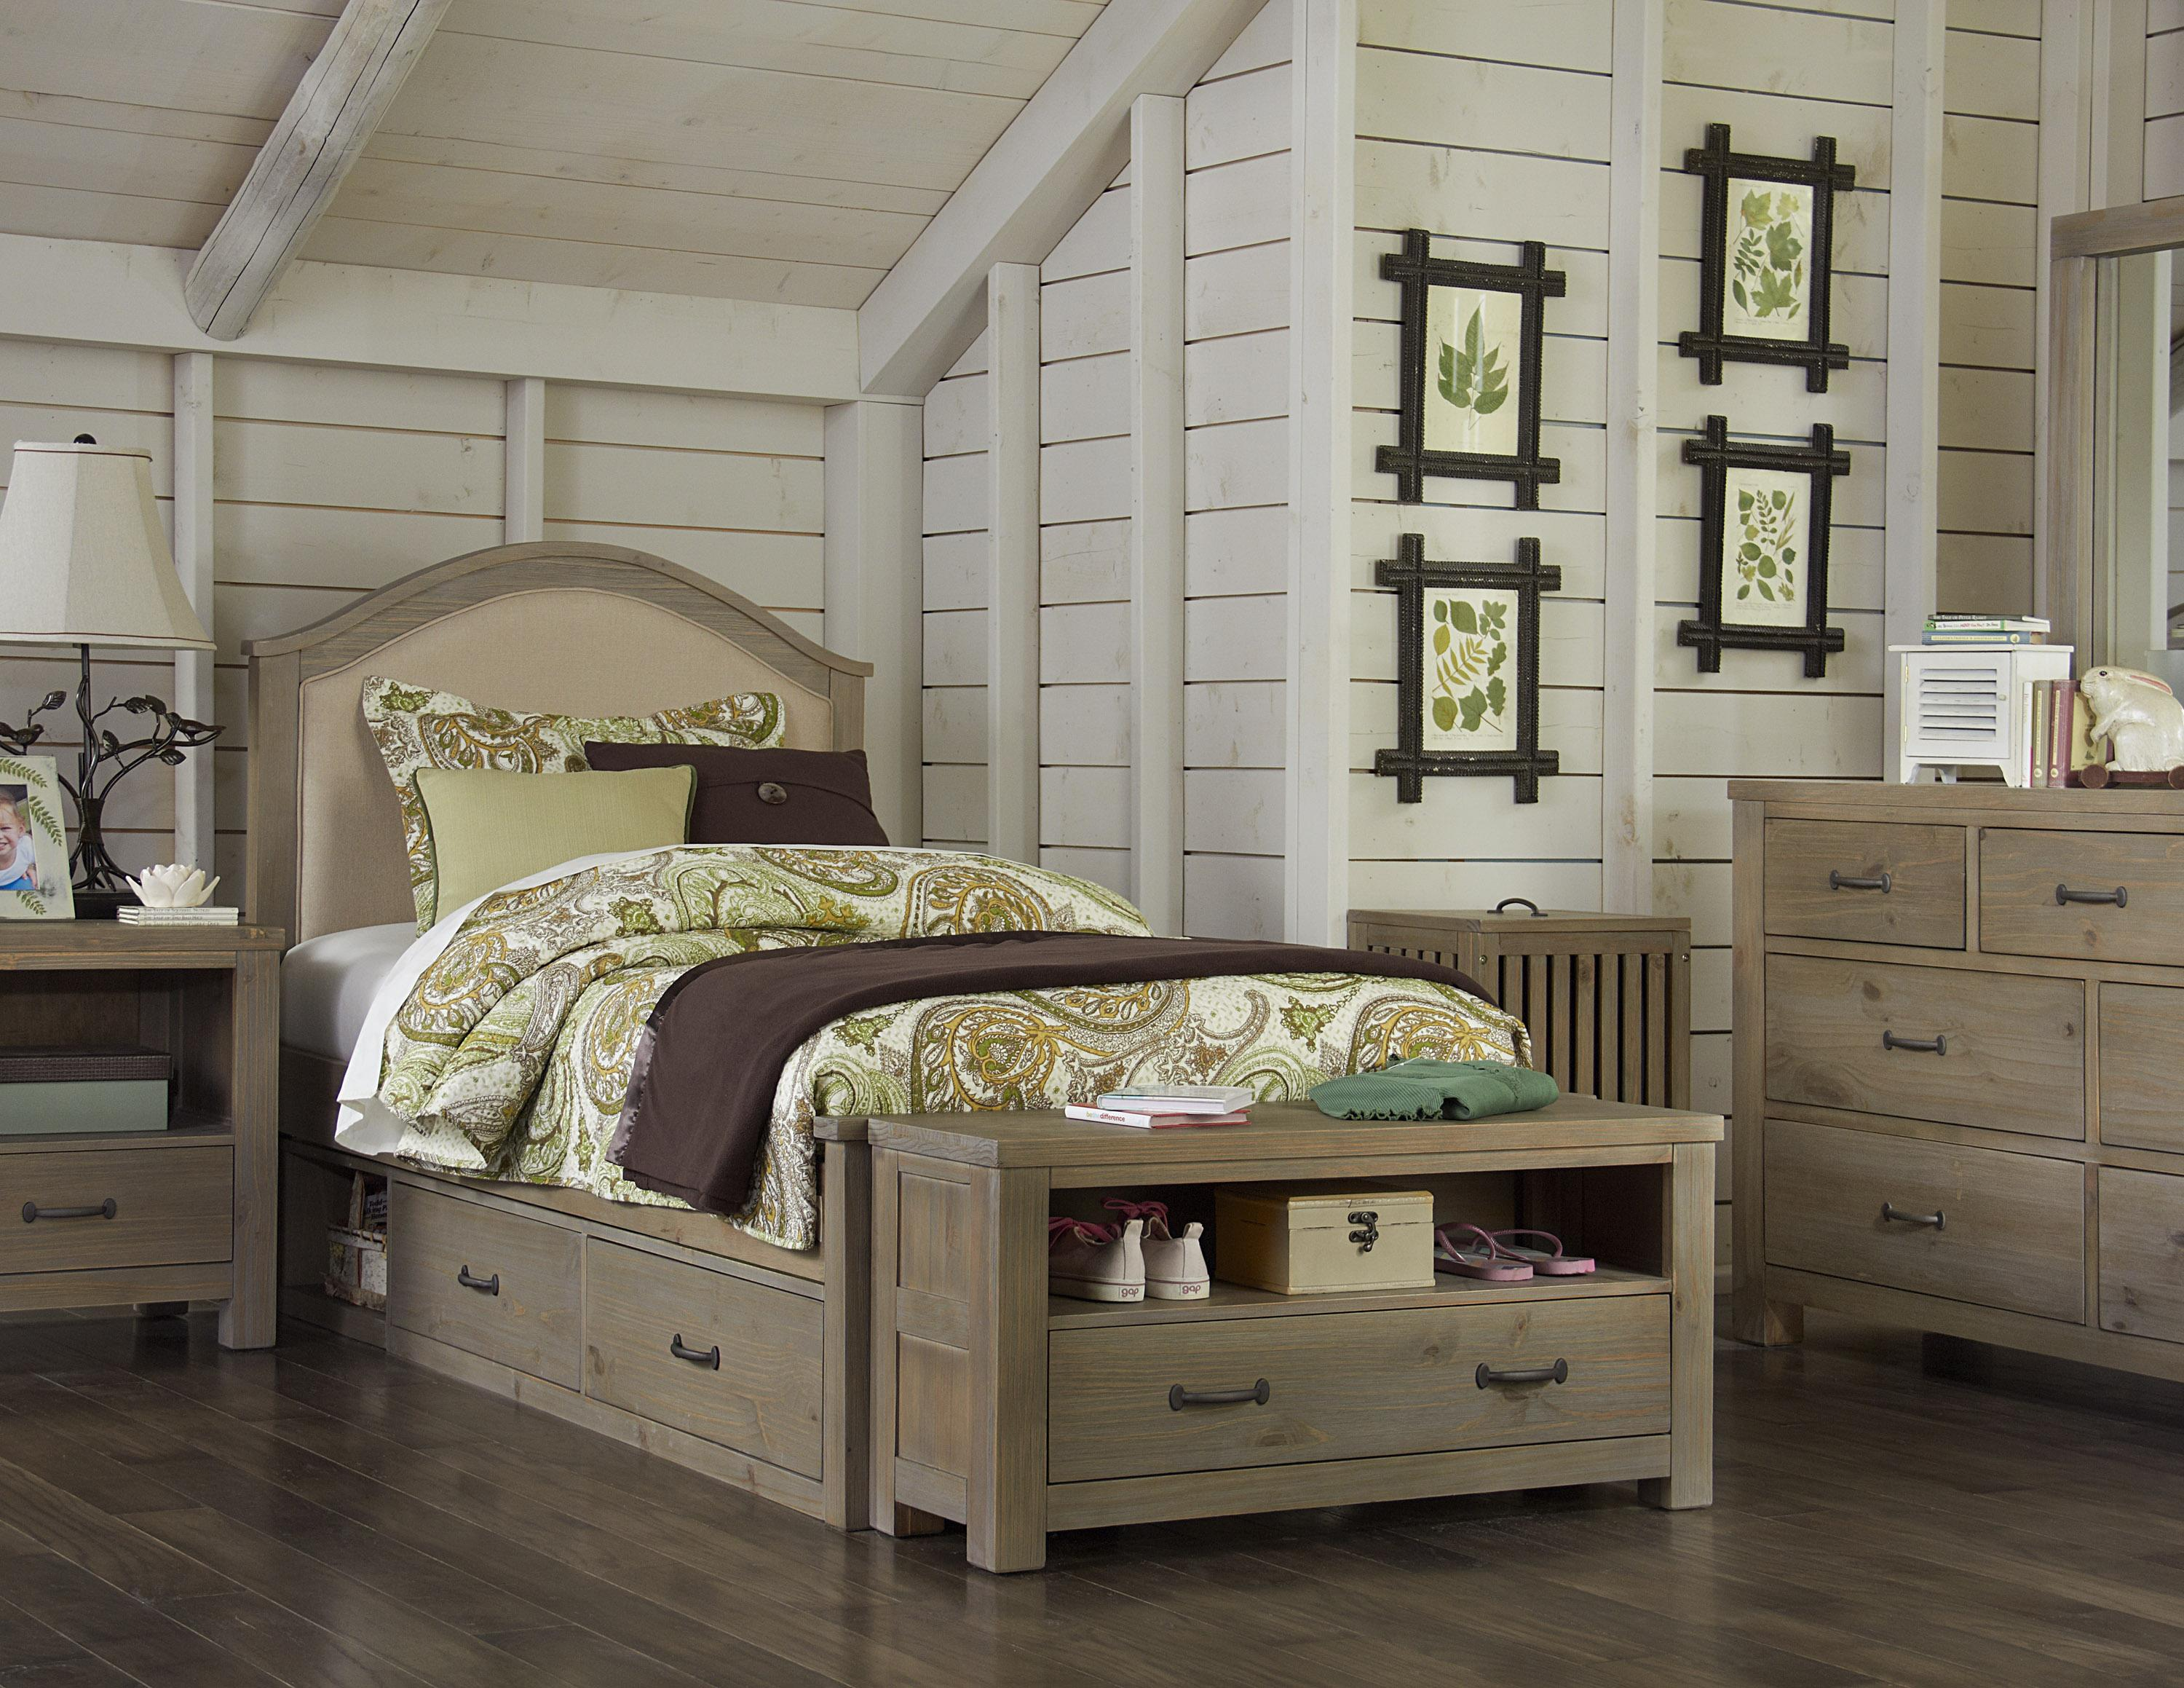 Cream Colored Bunk Beds Ne Kids Highlands Twin Bailey Bed With Cream Upholstered